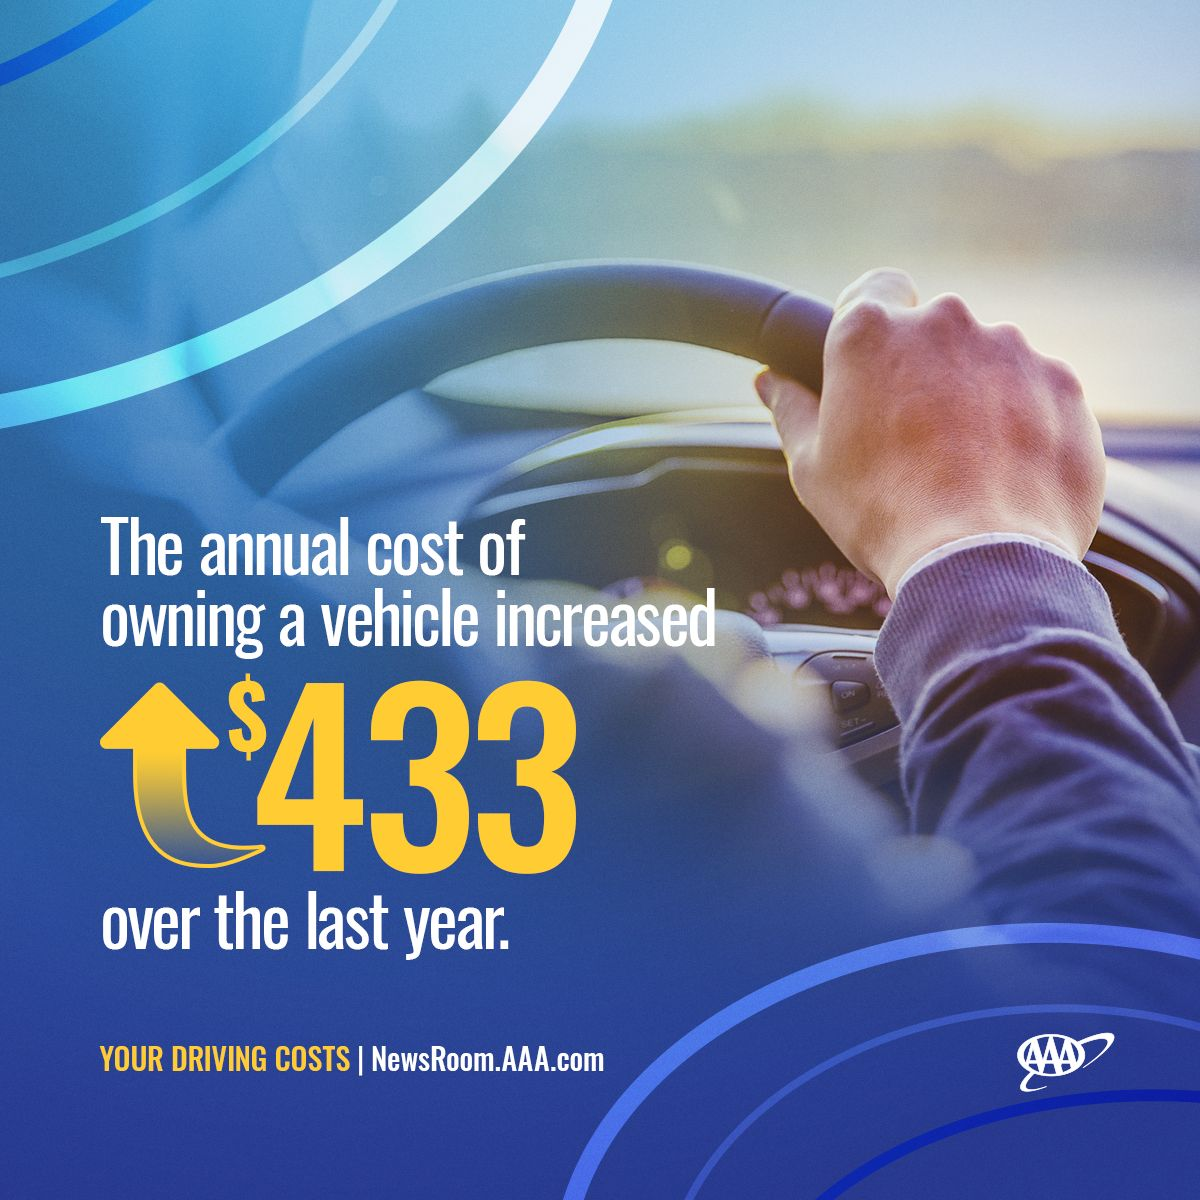 Your-Driving-Costs-2019-Graphics-3_increase